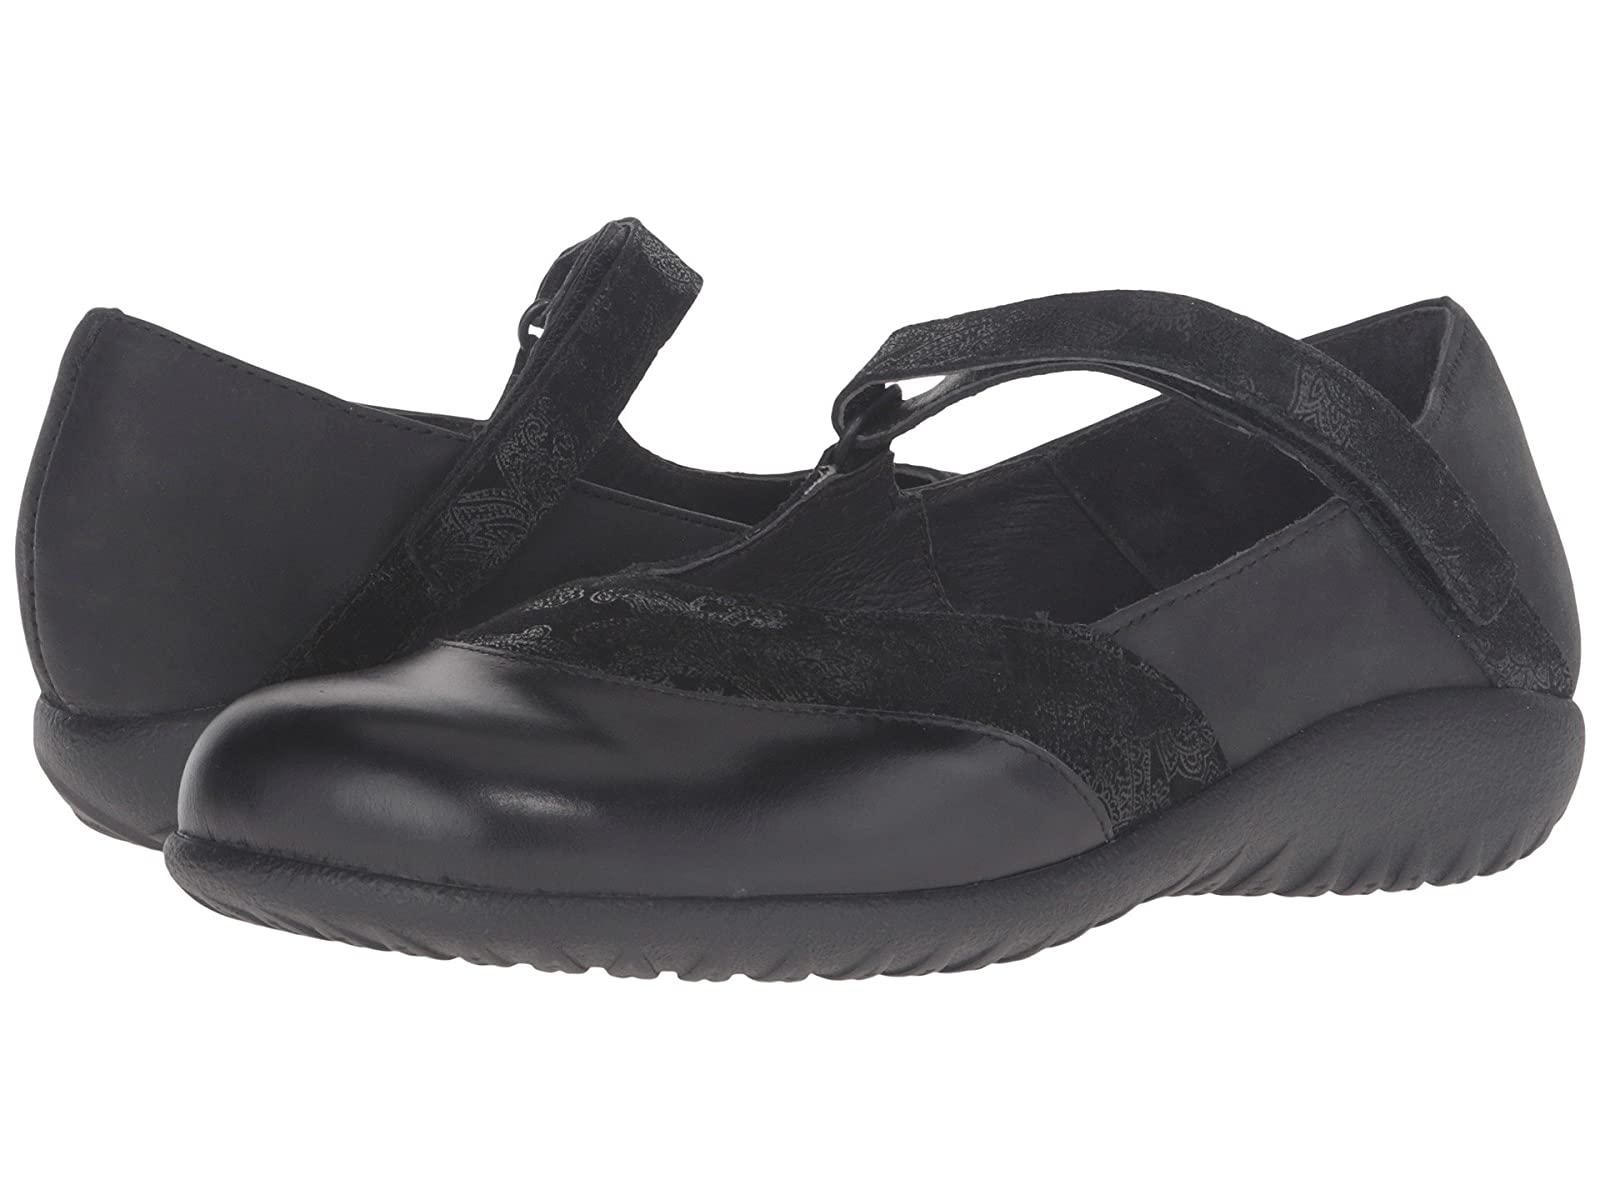 Naot LugaAtmospheric grades have affordable shoes